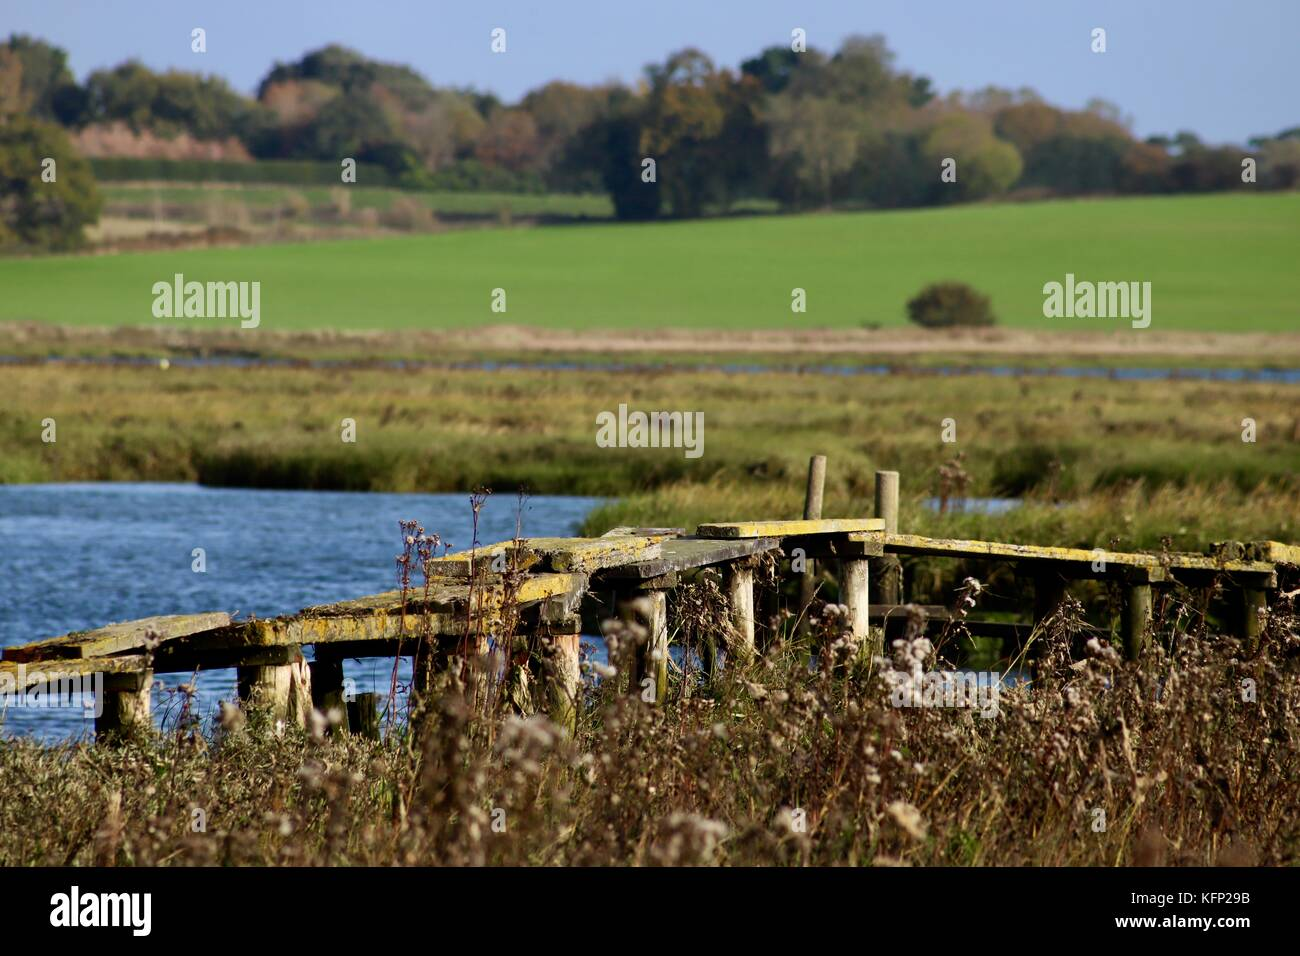 A rickety dangerous home made bridge across the saltmarsh by the River Deben, Waldringfield, Suffolk. - Stock Image